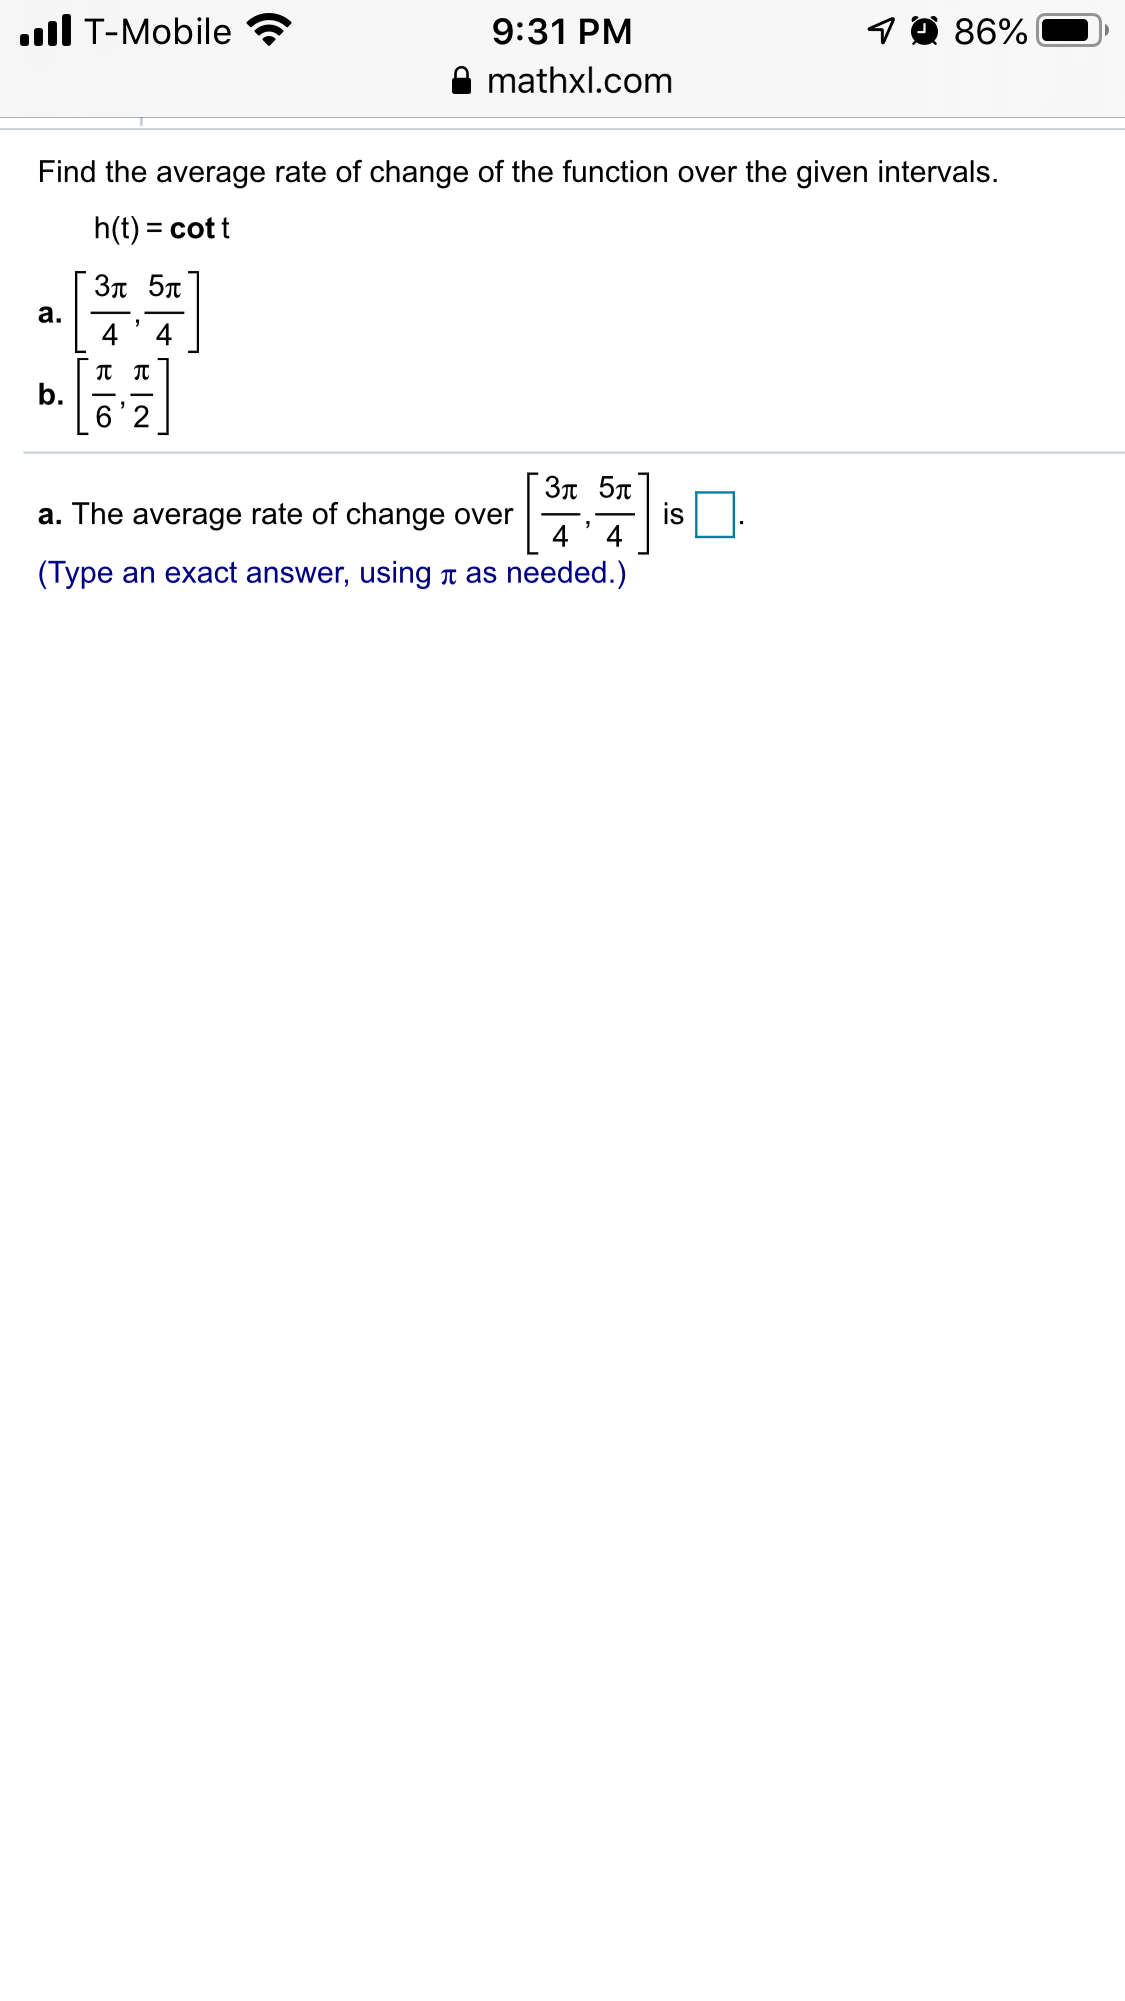 ll T-Mobile 19 86% 9:31 PM mathxl.com Find the average rate of change of the function over the given intervals. h(t) = cott %3D 3π 5π a. b. ГЗл 5л is . 4 a. The average rate of change over 4 (Type an exact answer, using t as needed.)